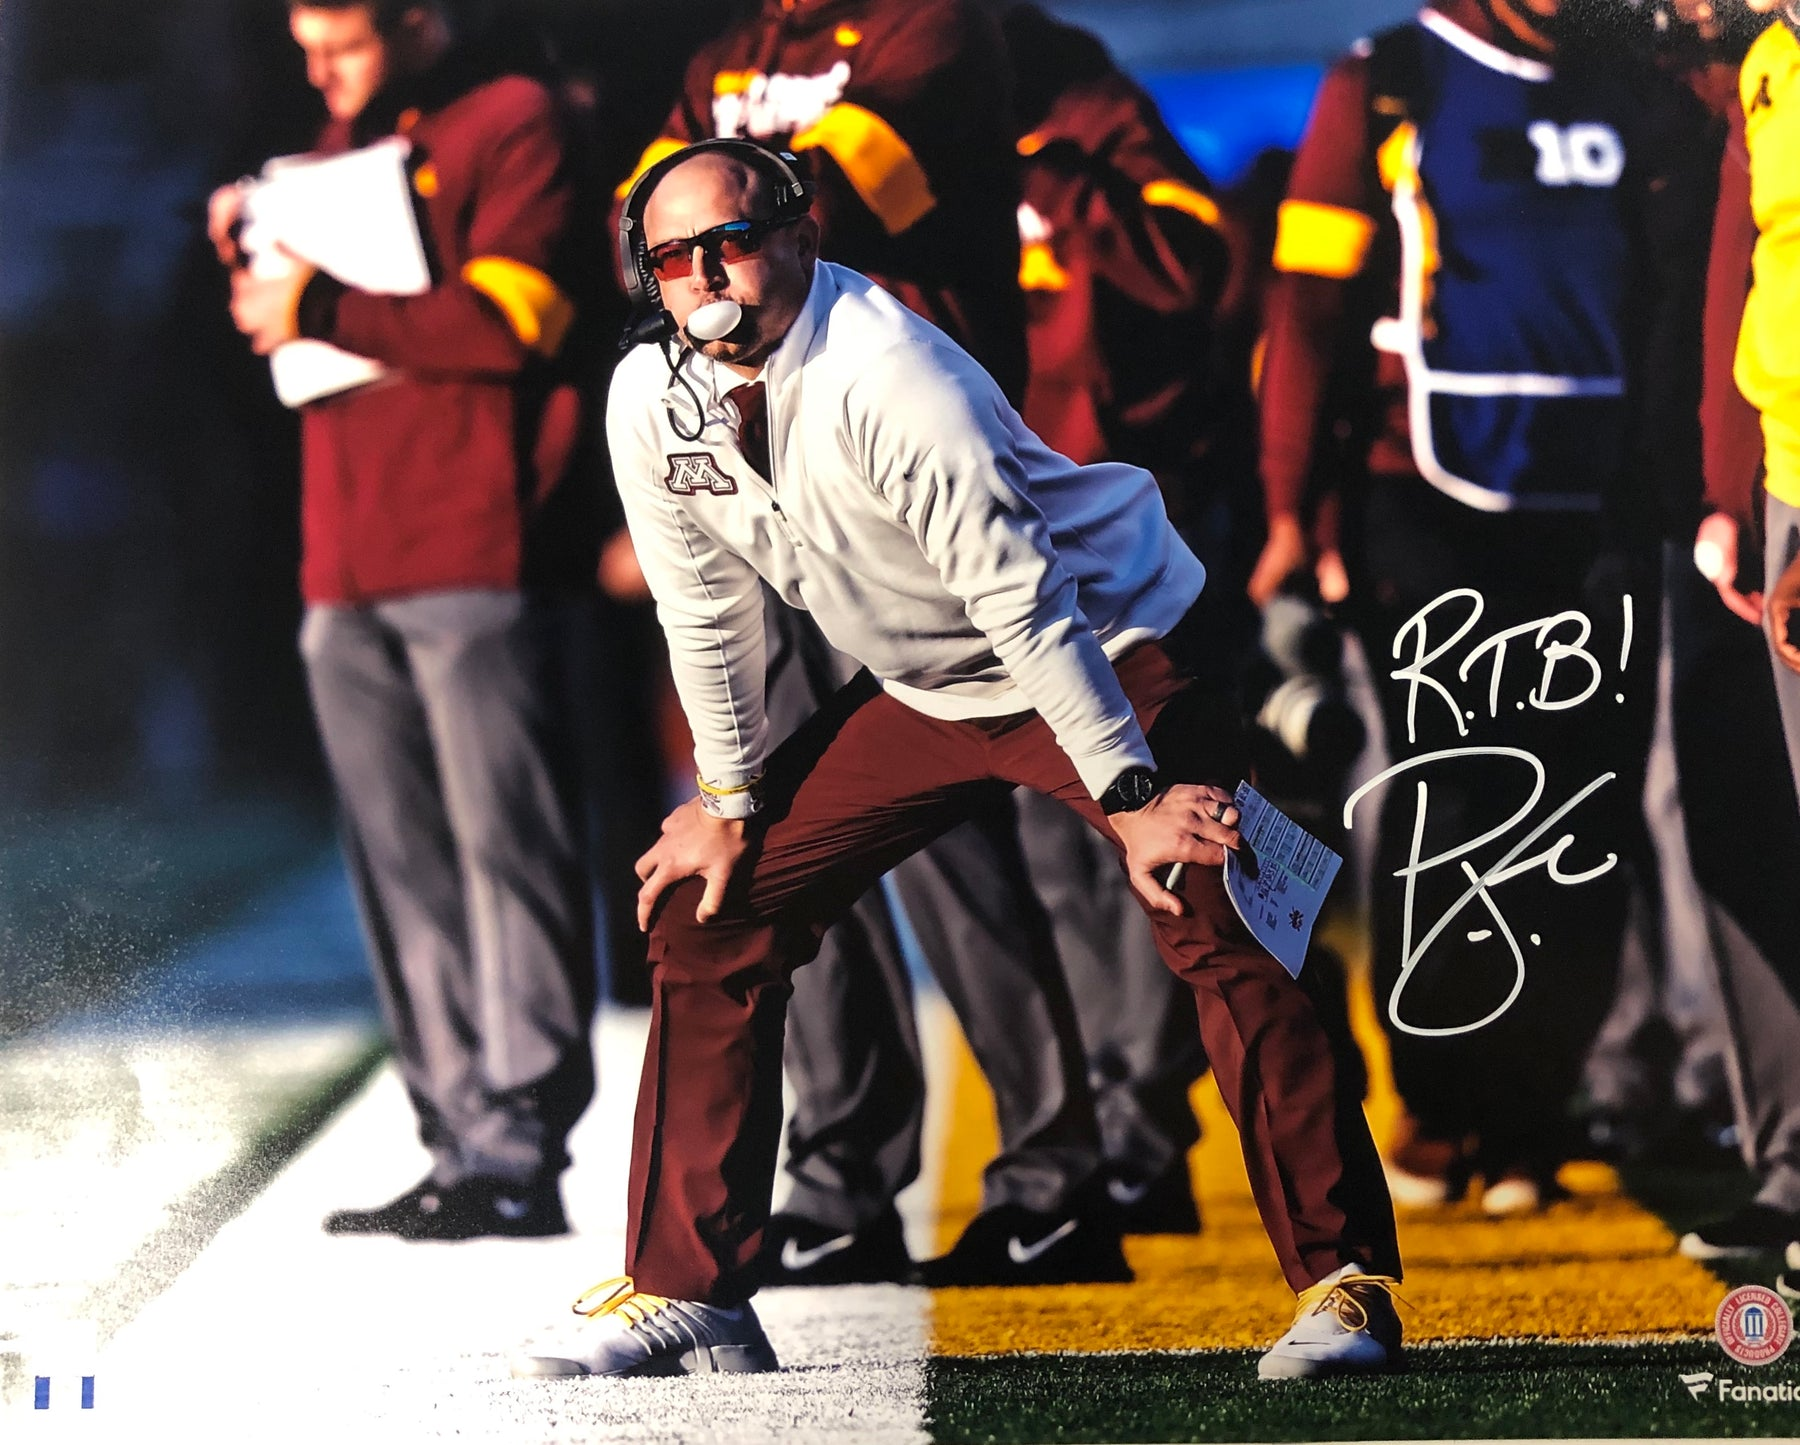 PJ Fleck Signed Sidelines 16x20 Photo with RTB